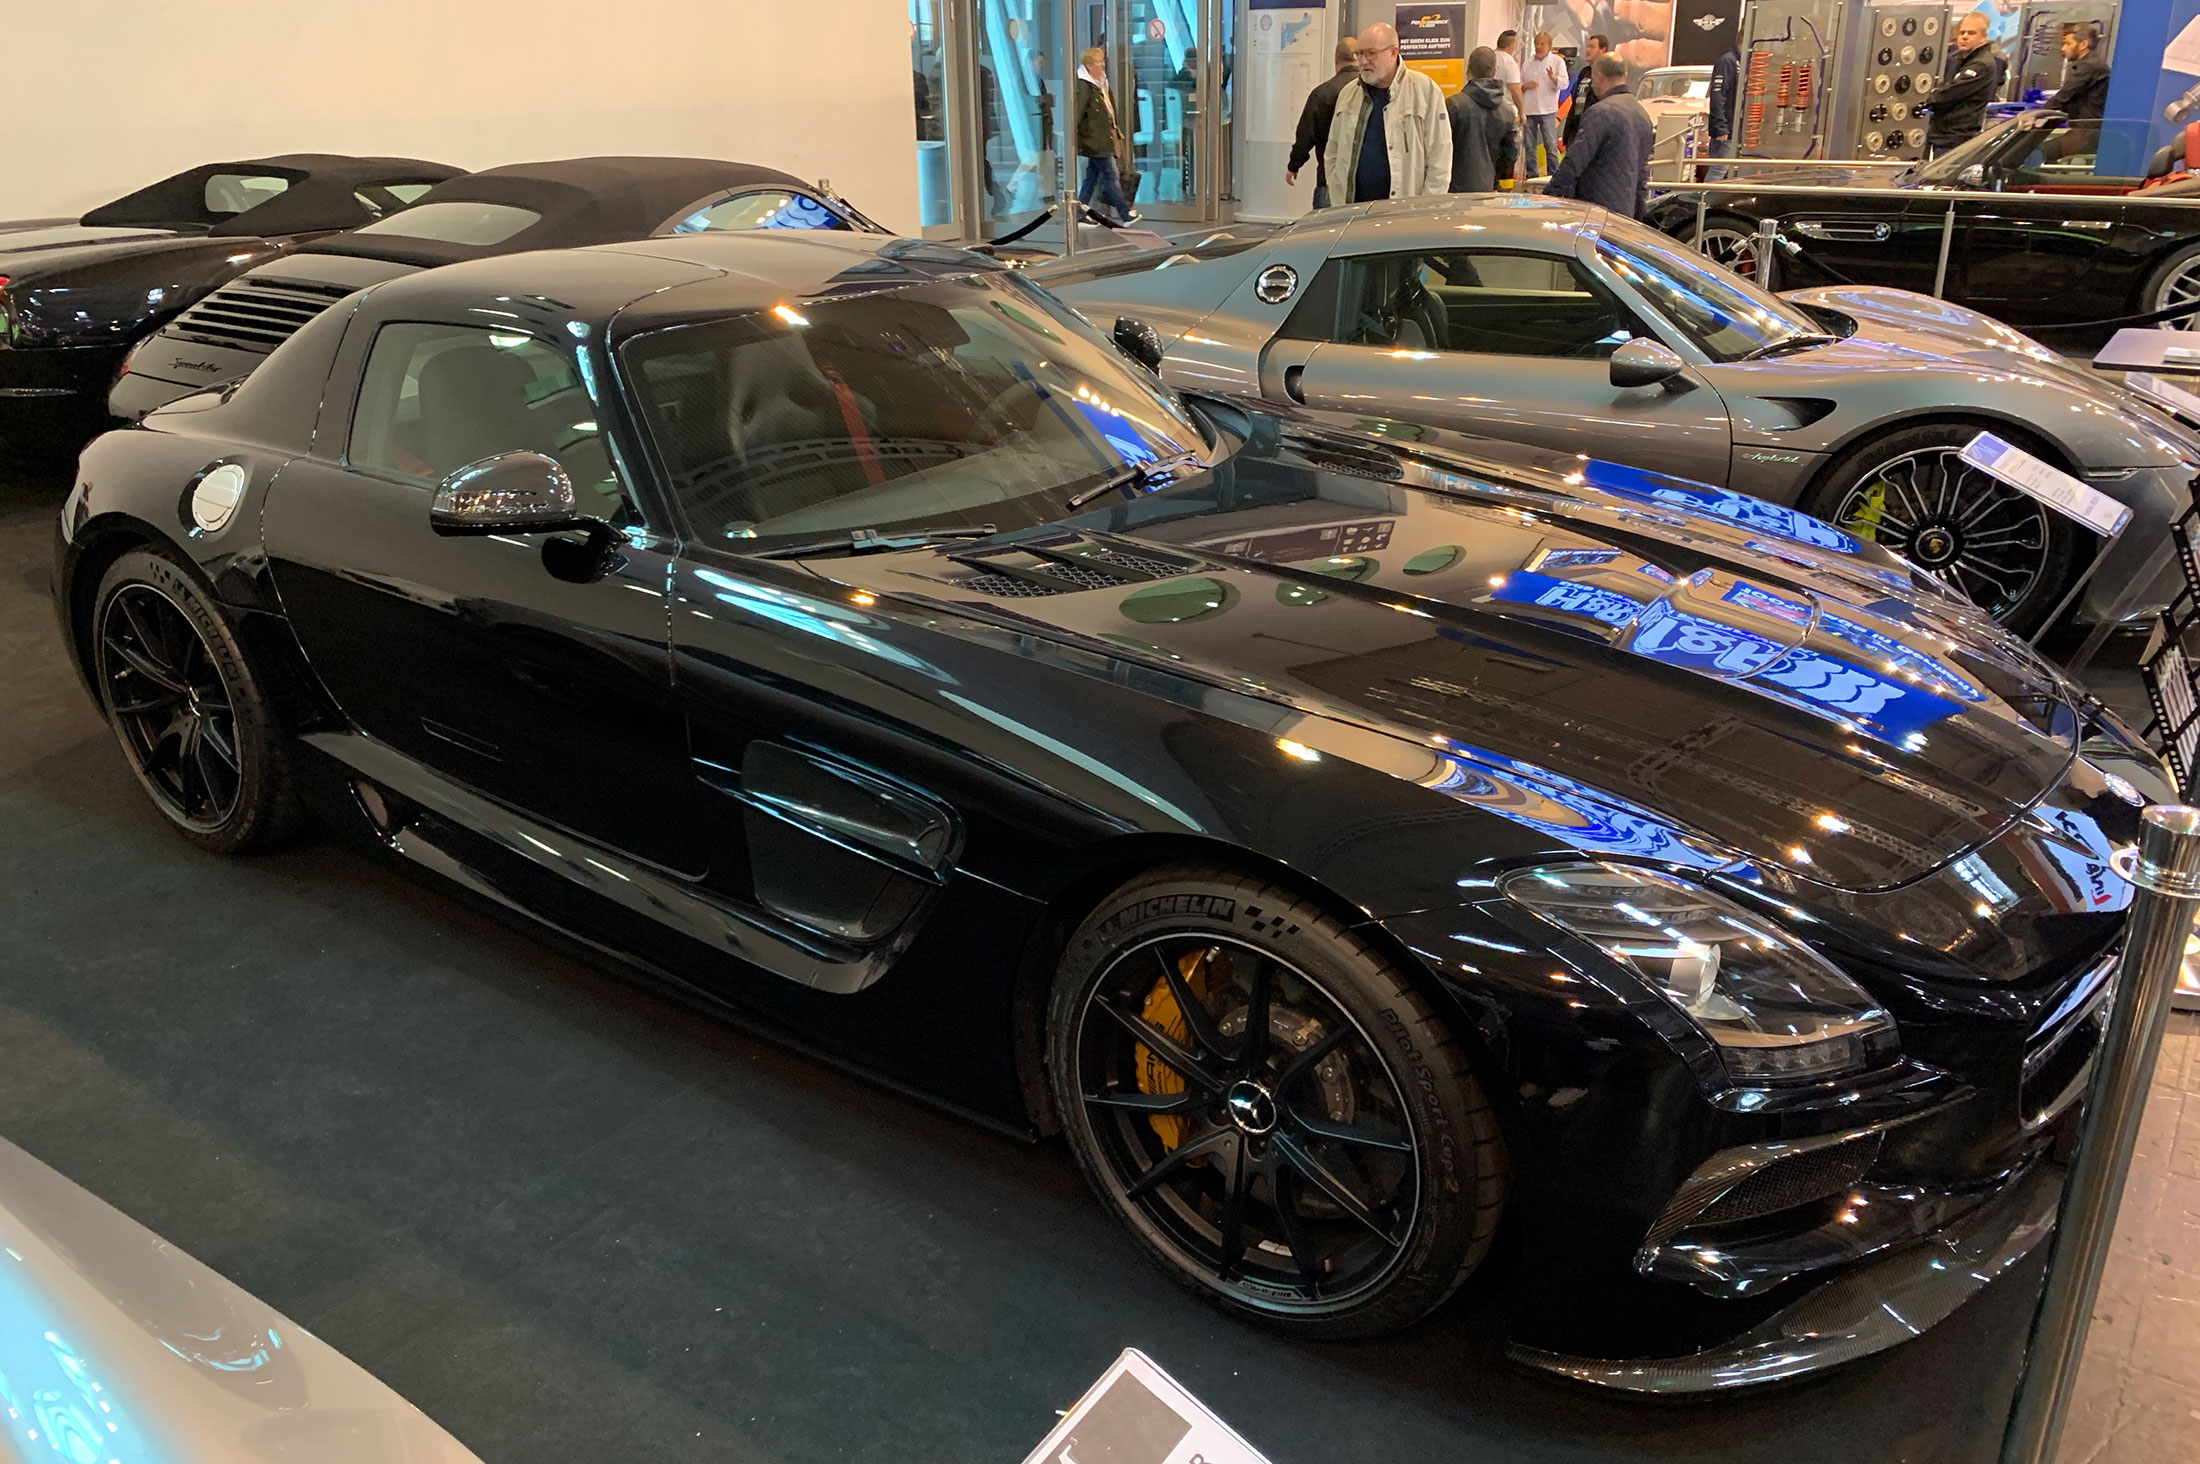 SLS Black Series, no big deal right? Wait for it…notice it's lacking the big wing and front canards. This is a Black Series without all the obnoxious (to some) aero…BADASS.